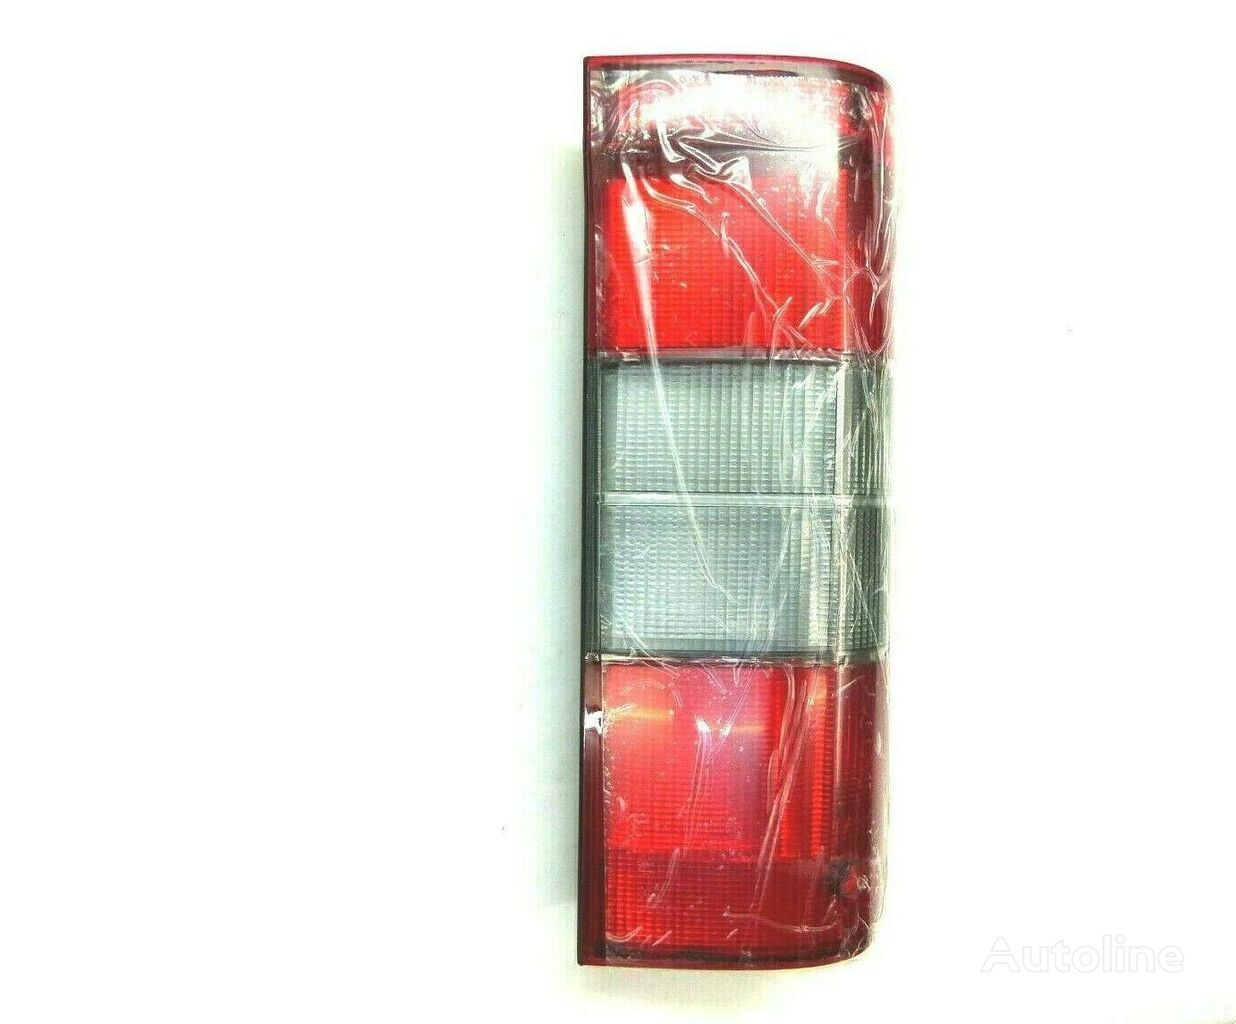 new FIAT Heckleuchte Rechts (1326358080) tail light for FIAT Ducato  automobile